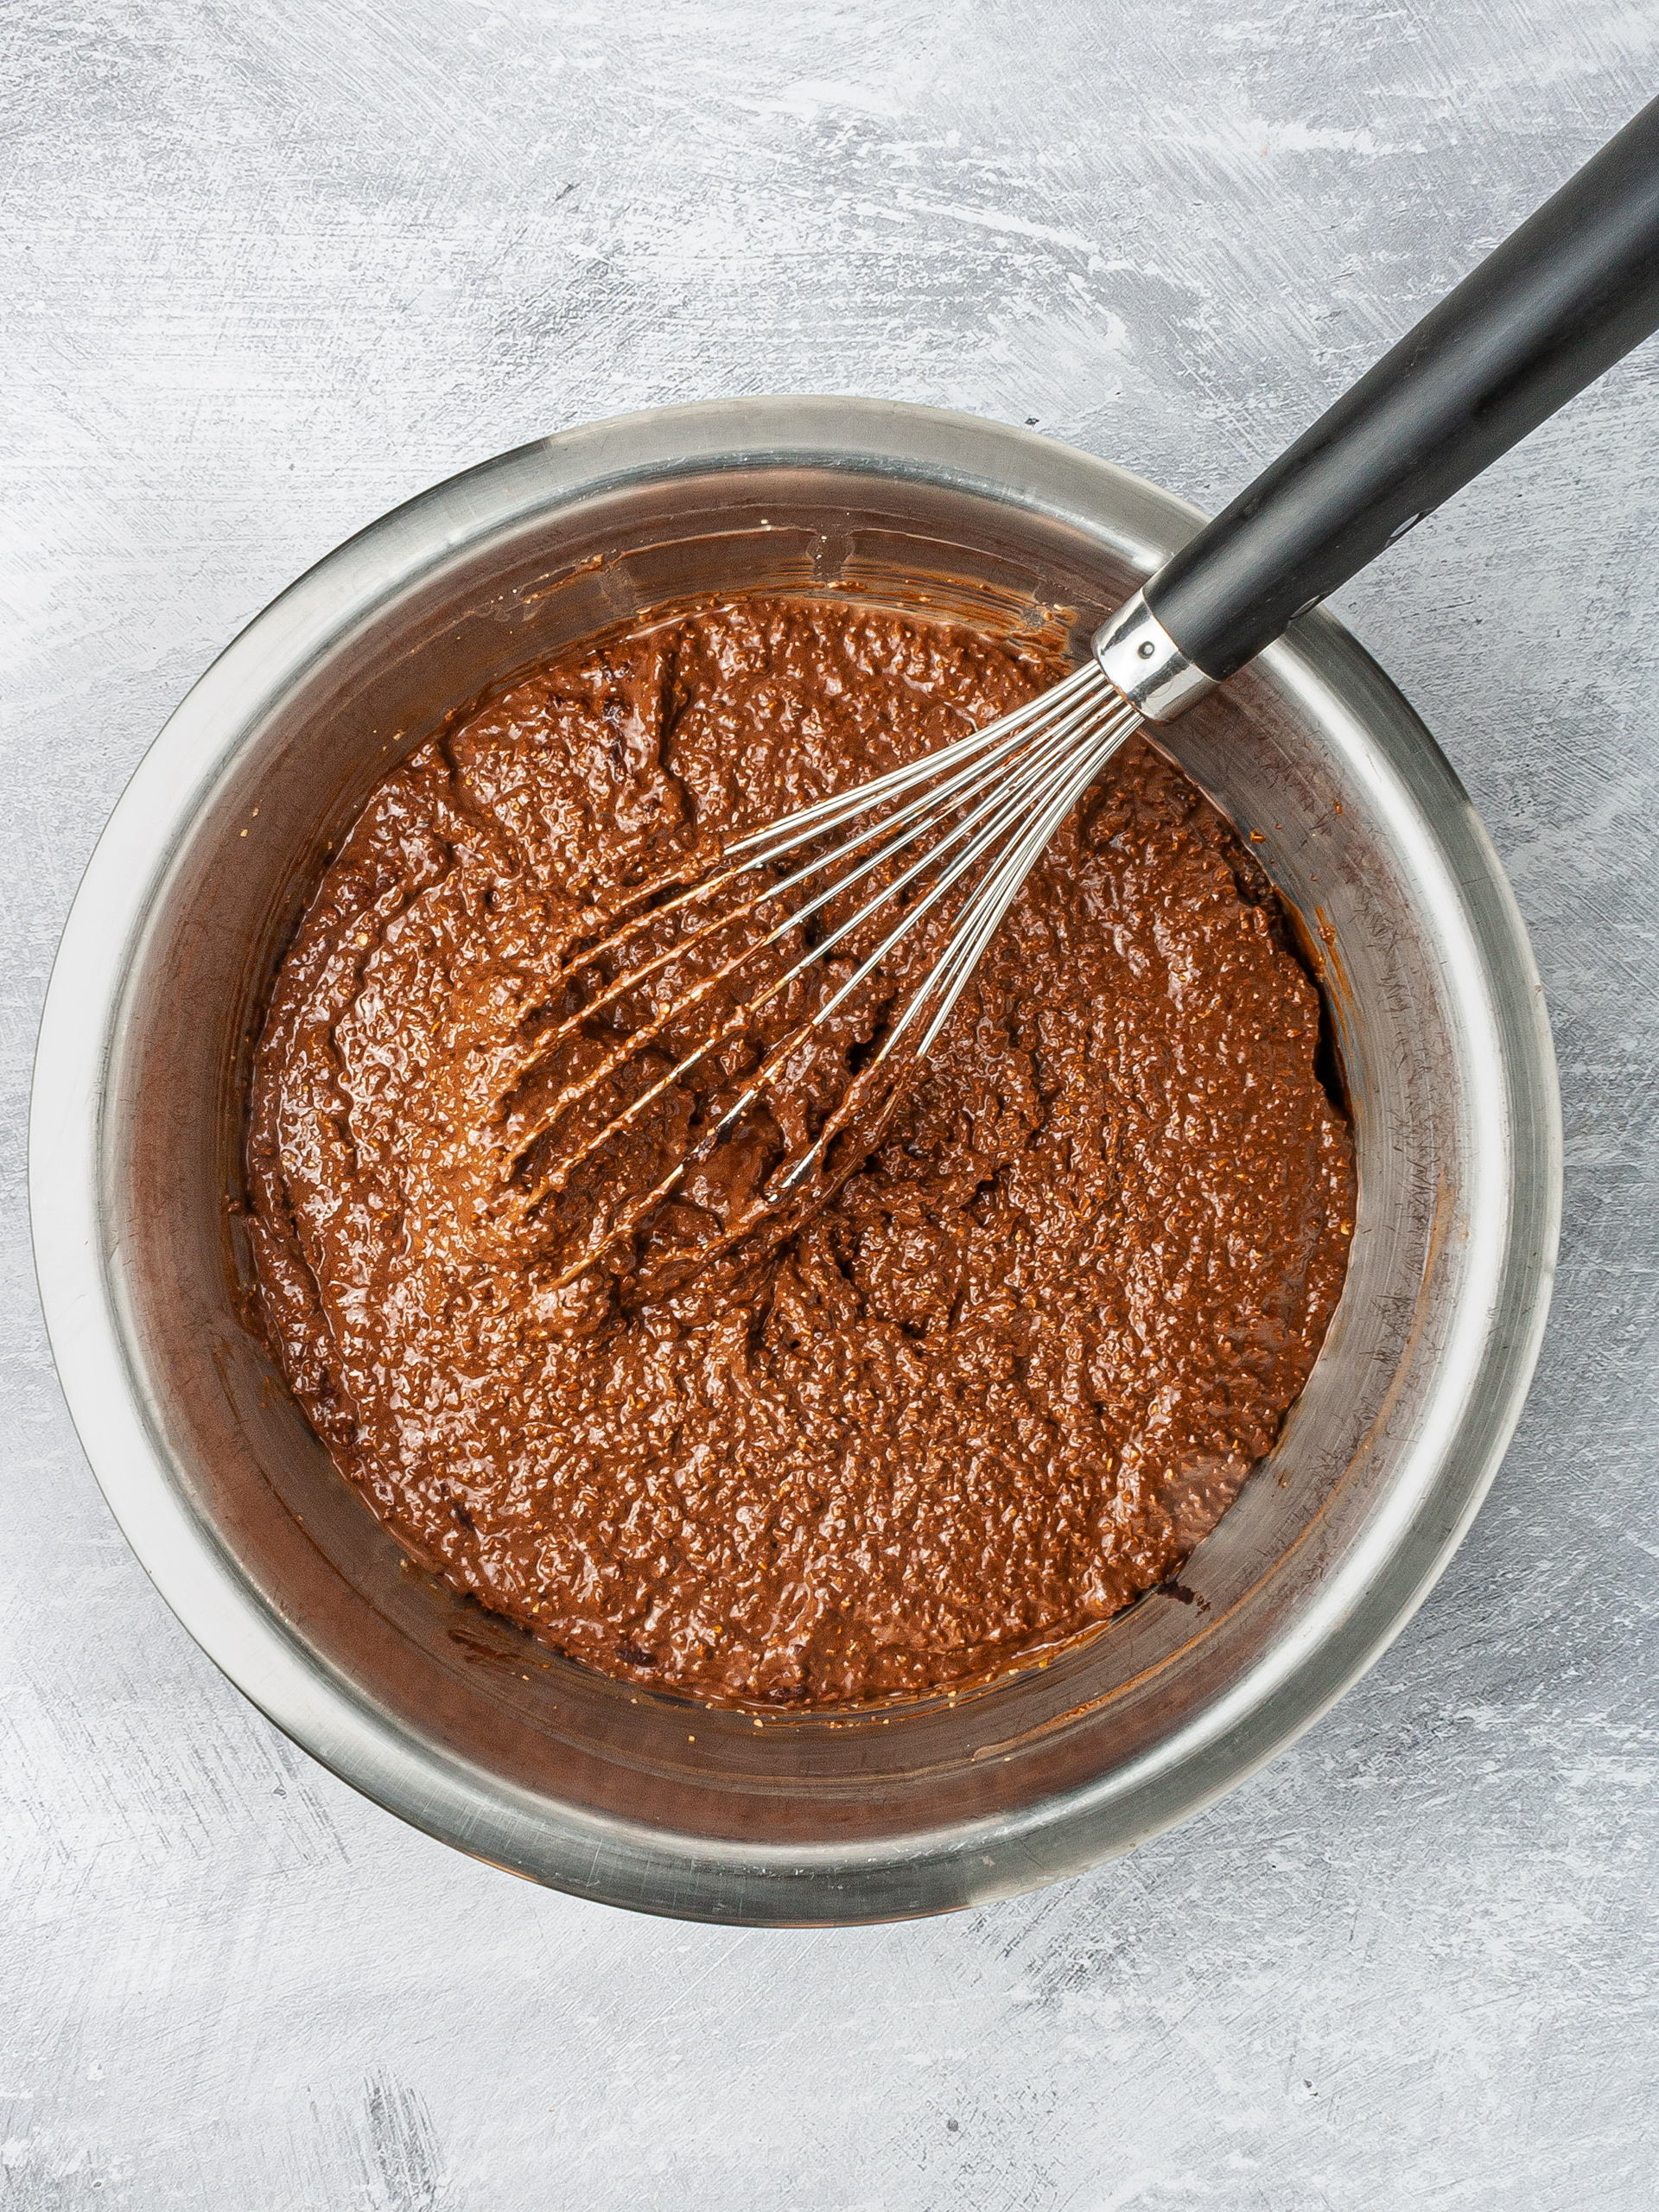 Chocolate lavender cake batter in a bowl with whisker.